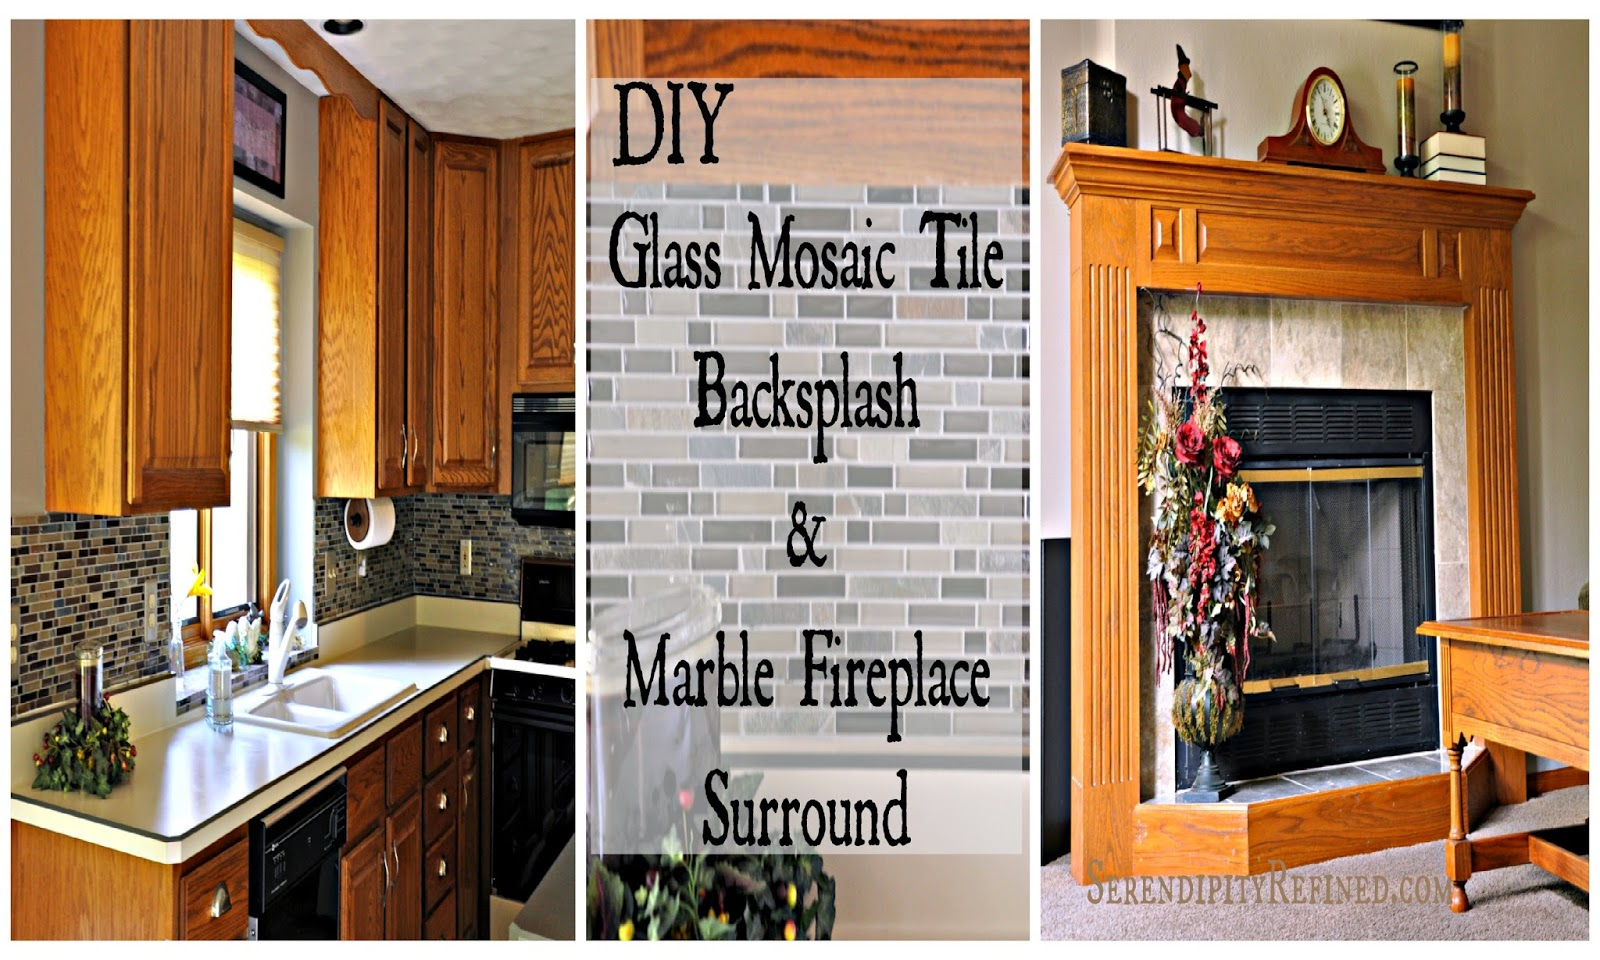 Serendipity Refined Blog: DIY Updates: Glass Mosaic Tile ...